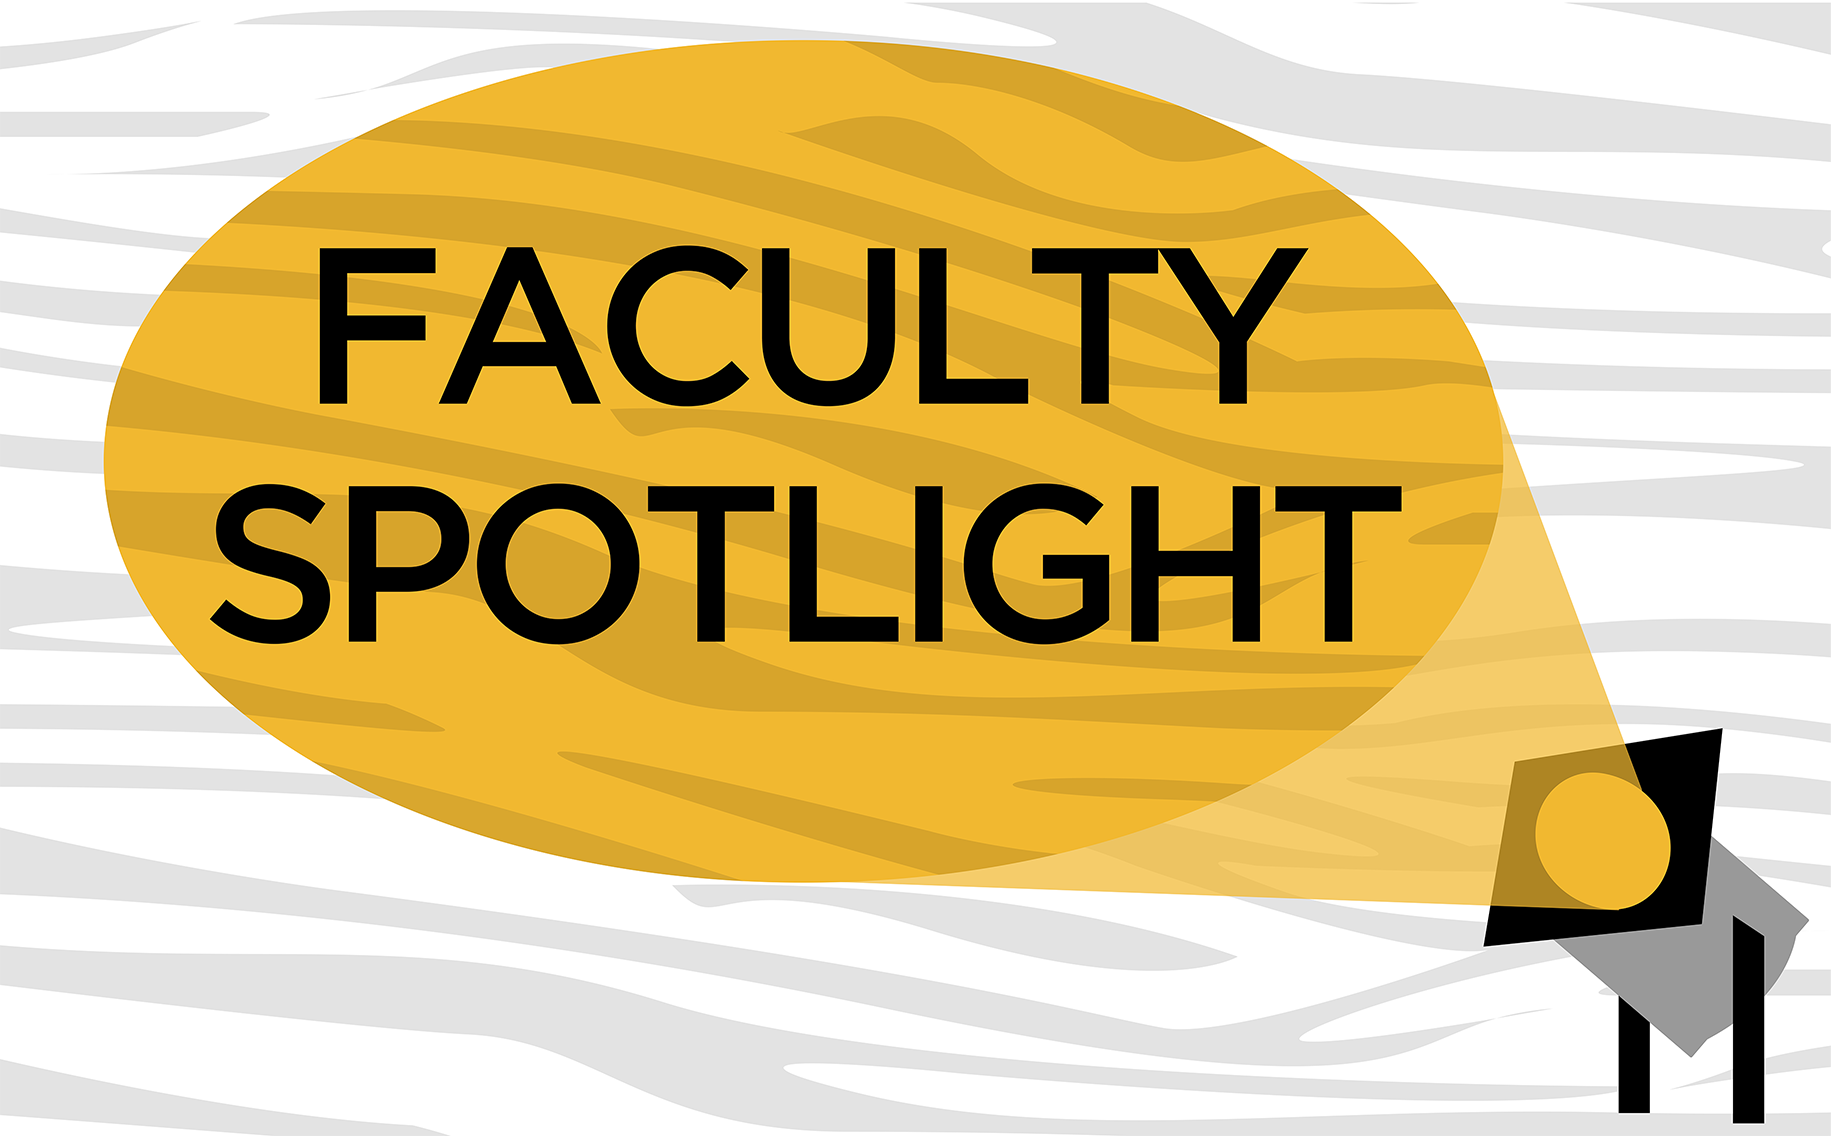 Faculty Spotlight graphic